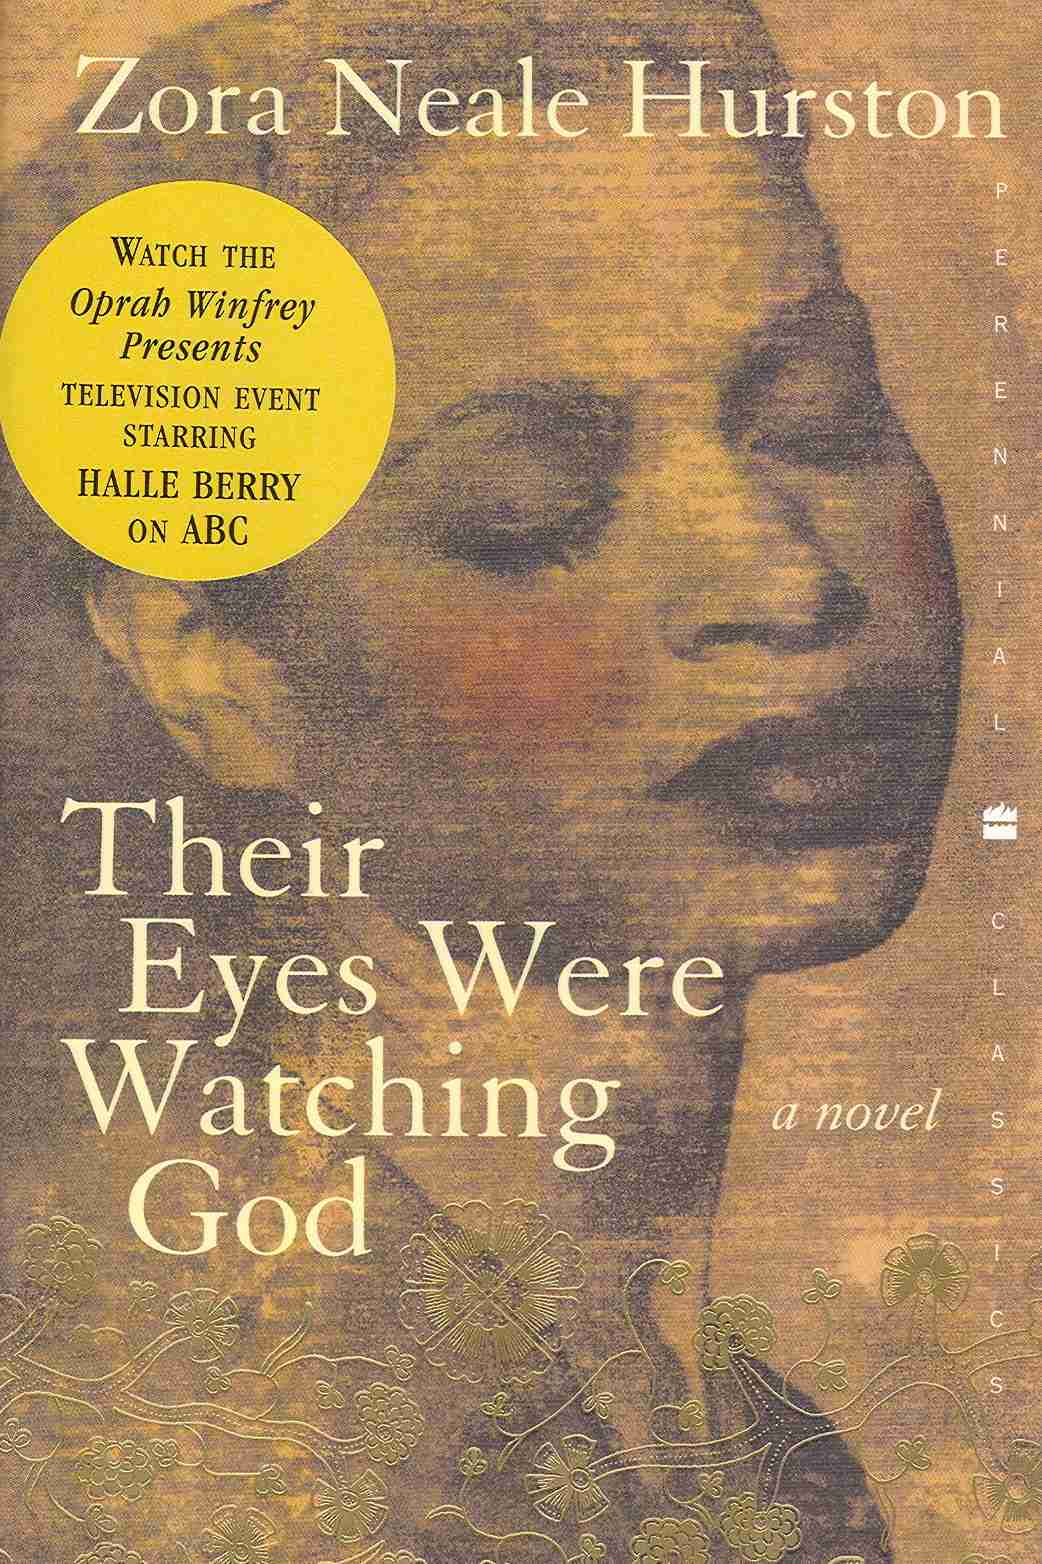 thesis for the book their eyes were watching god (results page 2) view and download their eyes were watching god essays examples also discover topics, titles, outlines, thesis statements, and conclusions for your their eyes were watching god essay.